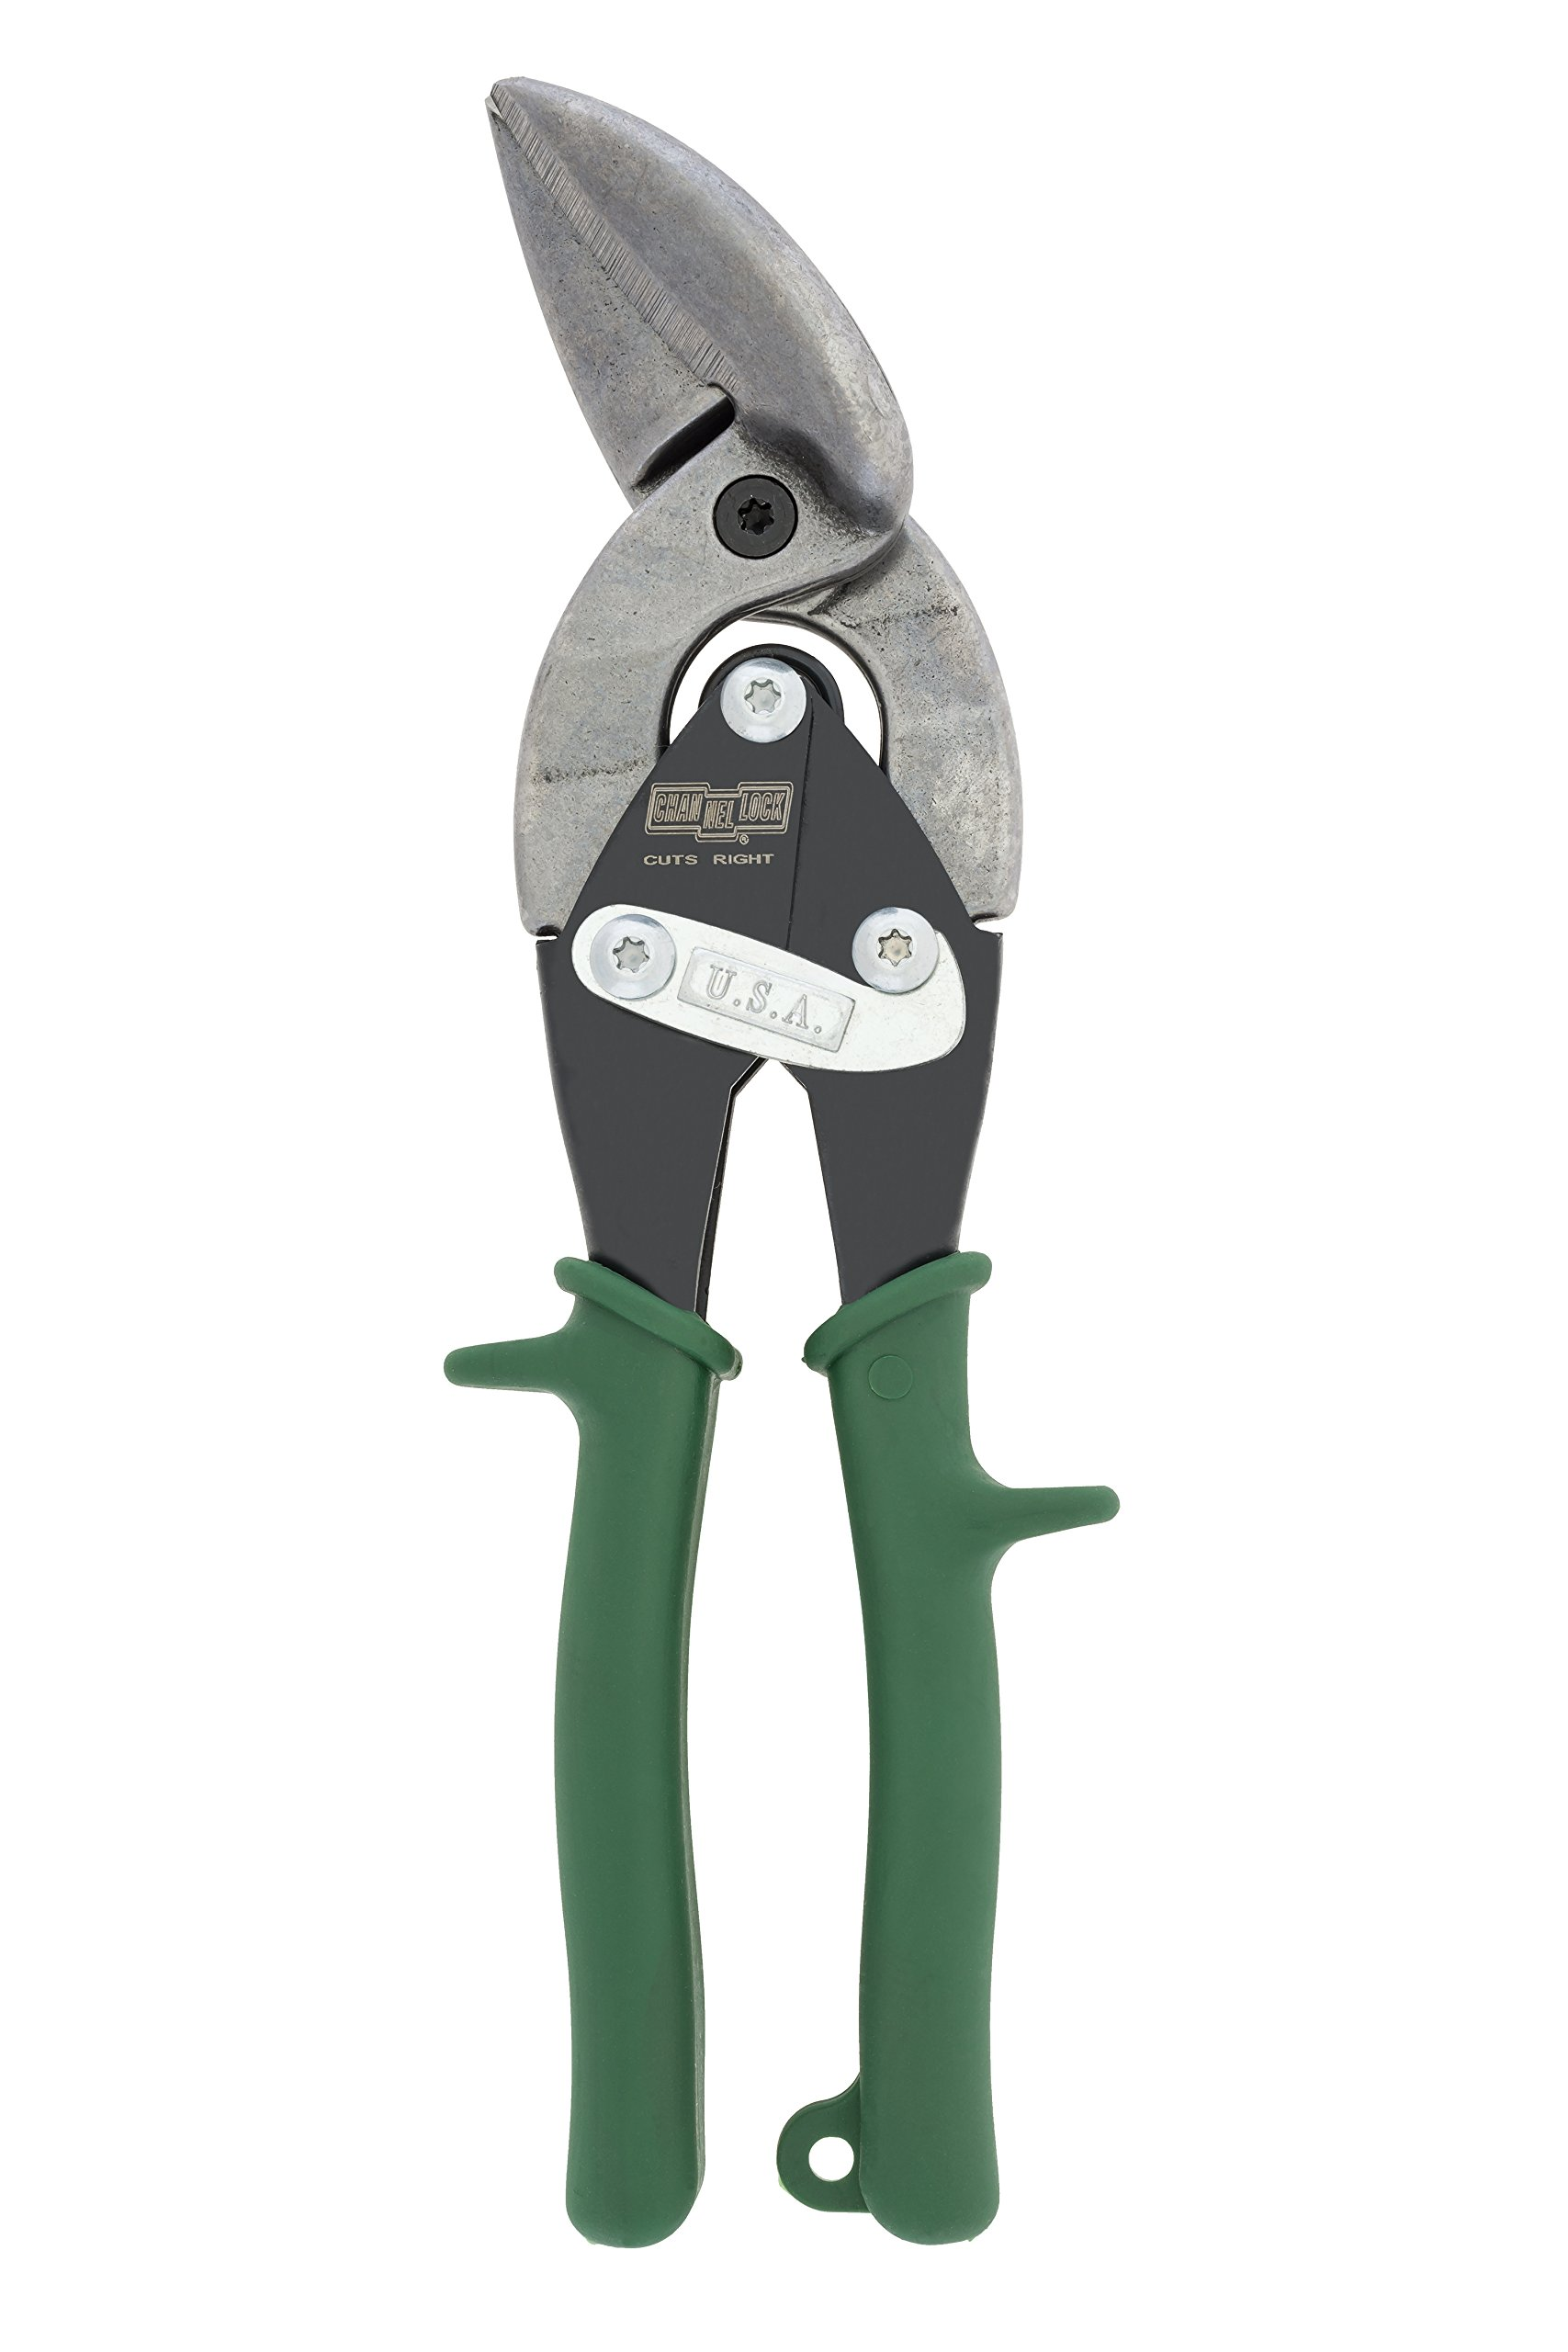 Channellock 610FR 10'' Offset Right Cut Aviation Snips